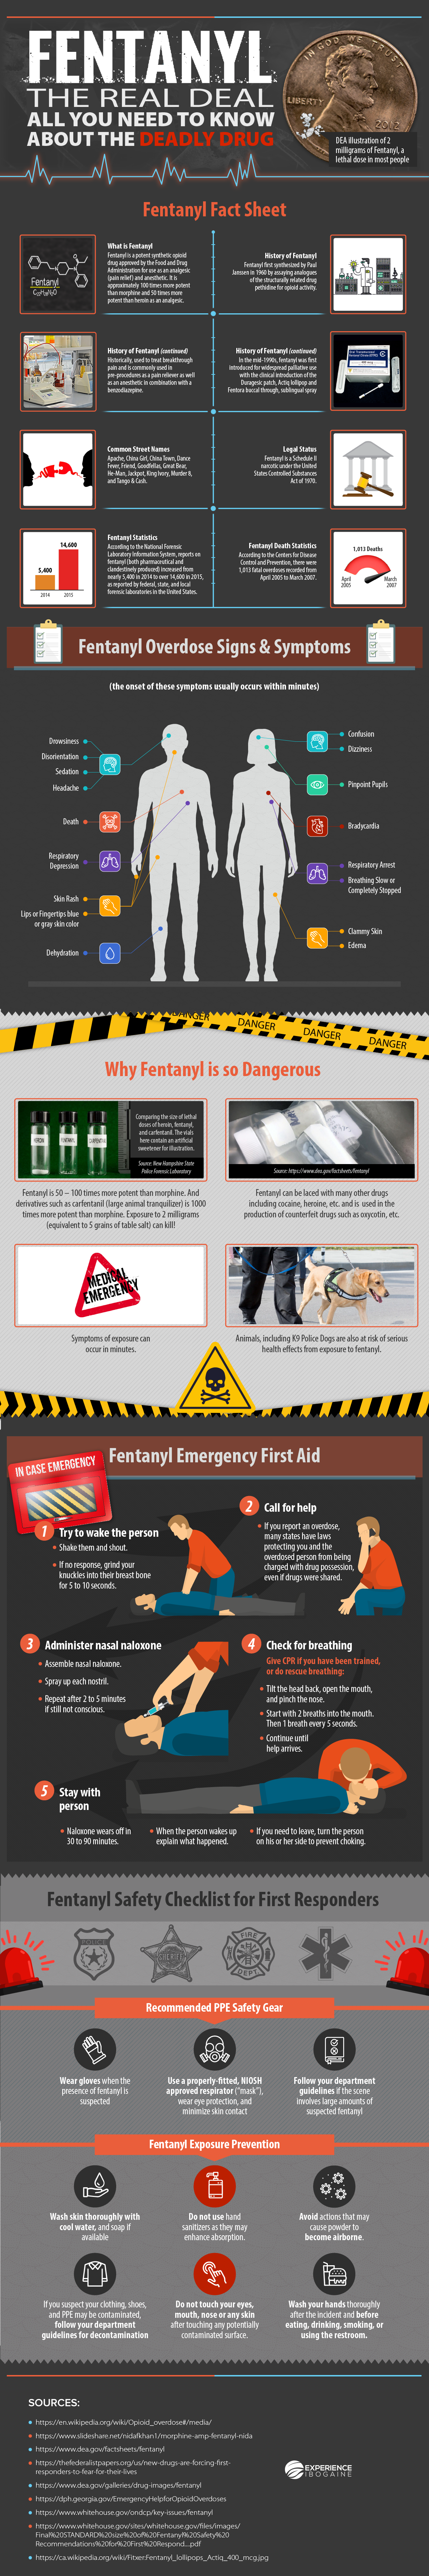 Fentanyl - What You Need to Know About the Deadly Drug (InfoGraphic)